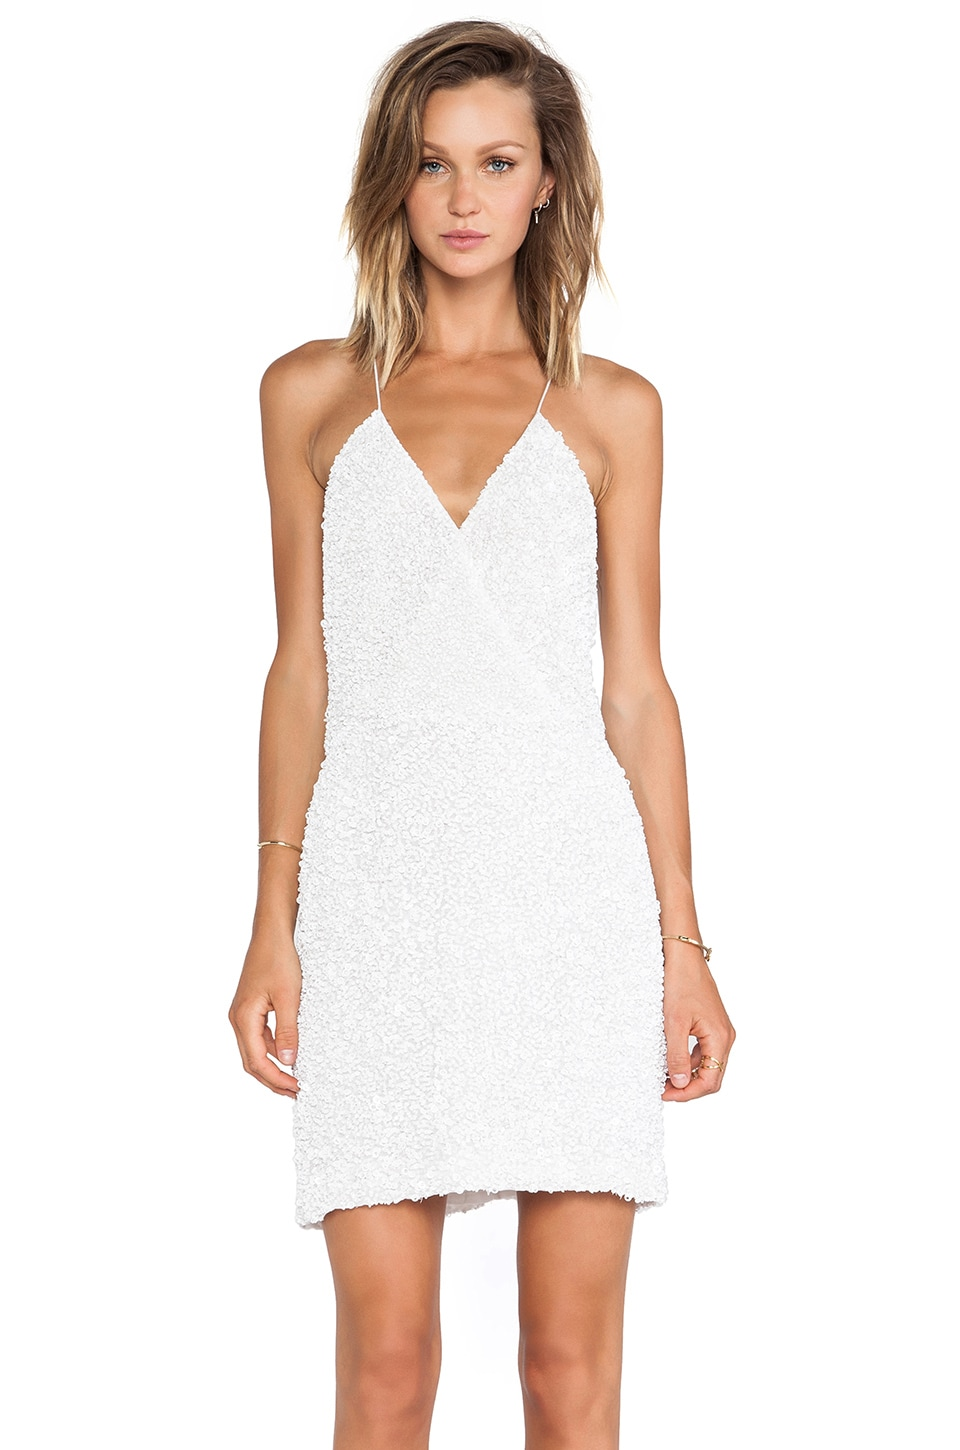 MLV Mira Tank Dress in White